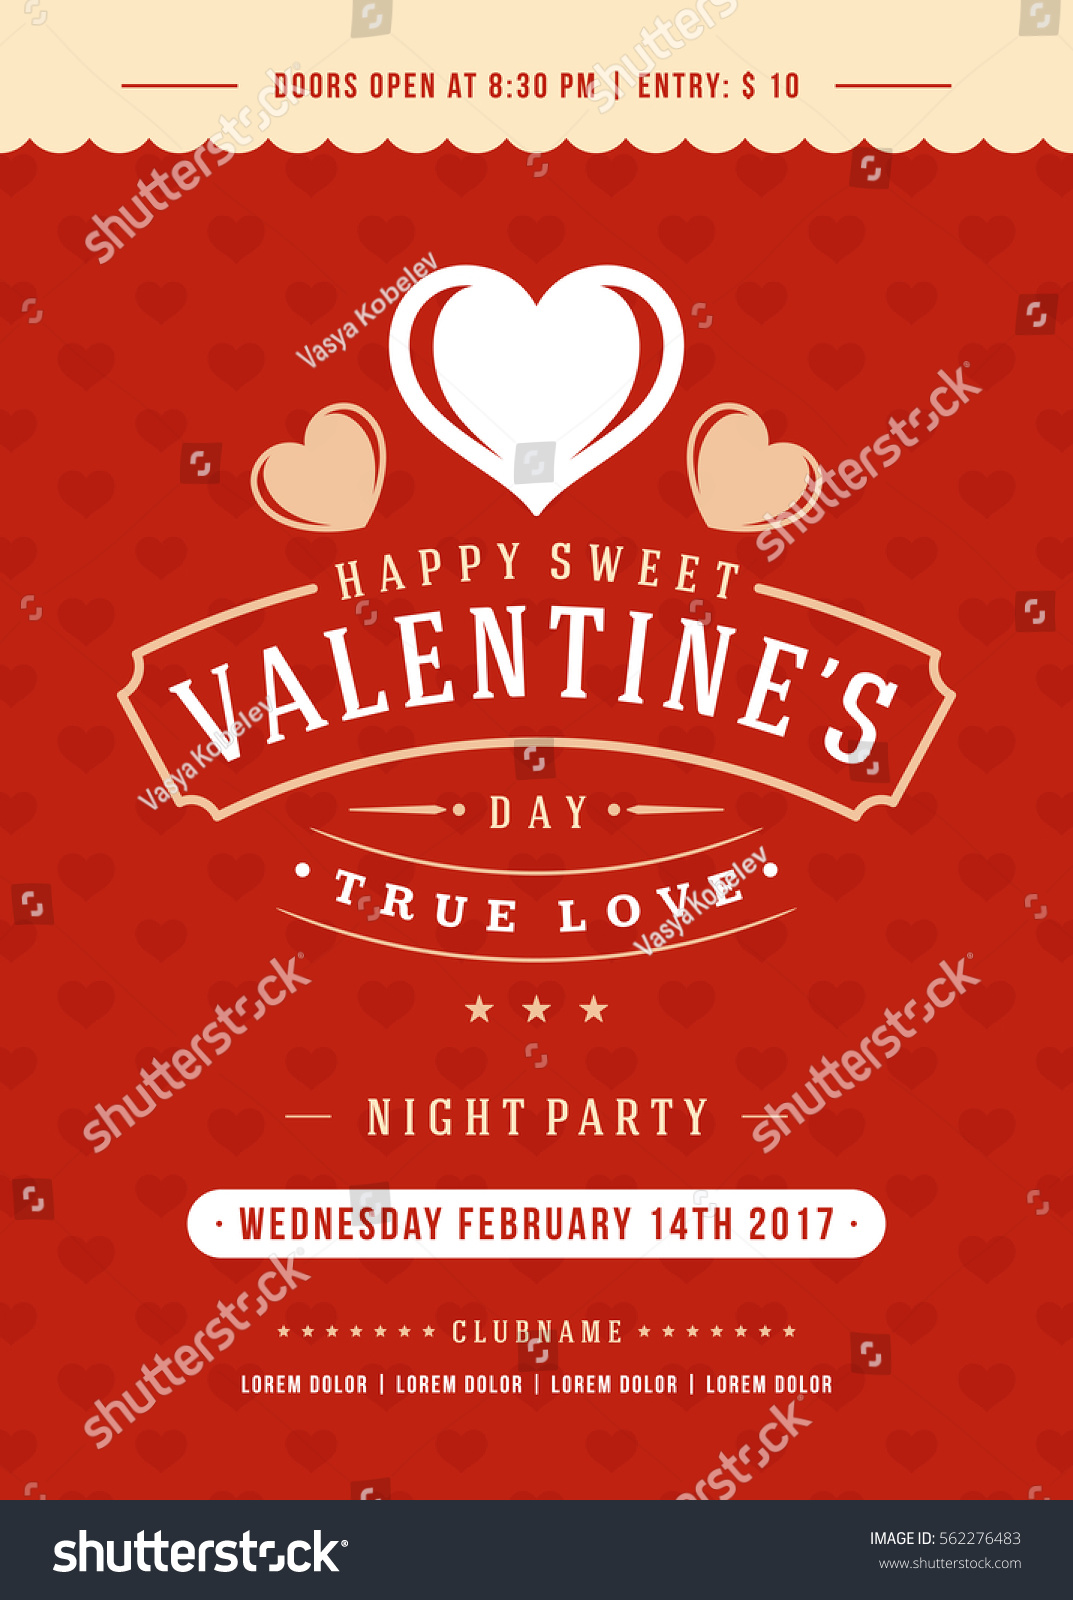 happy valentines day party invitation poster stock vector 562276483 shutterstock. Black Bedroom Furniture Sets. Home Design Ideas